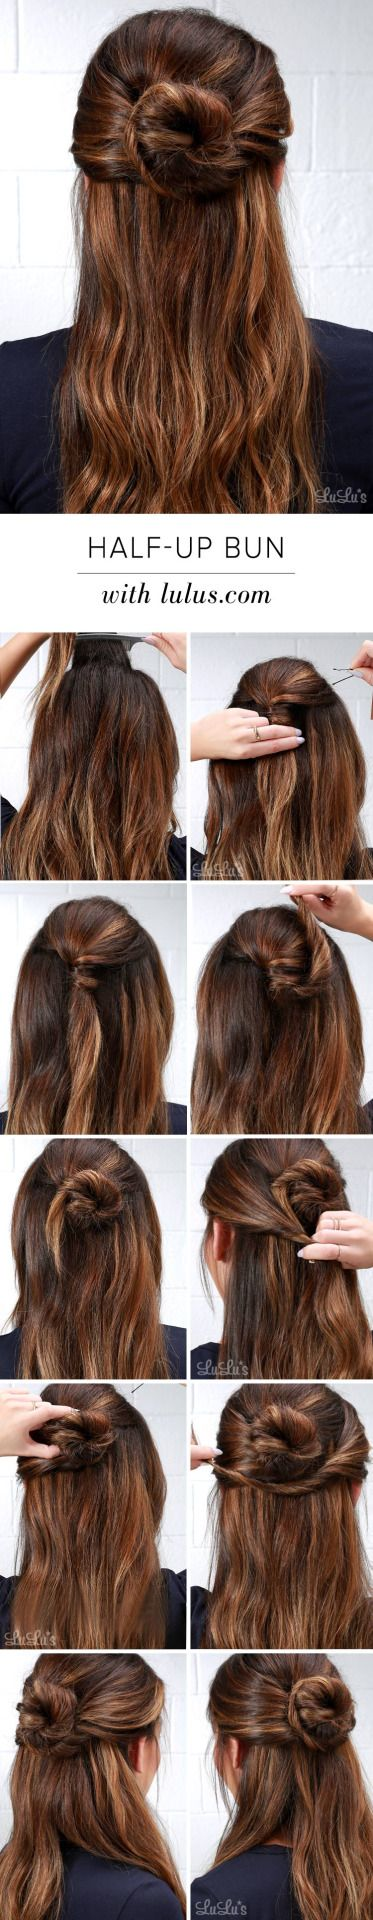 Half-up bun tutorial | Hairstyles for long hair